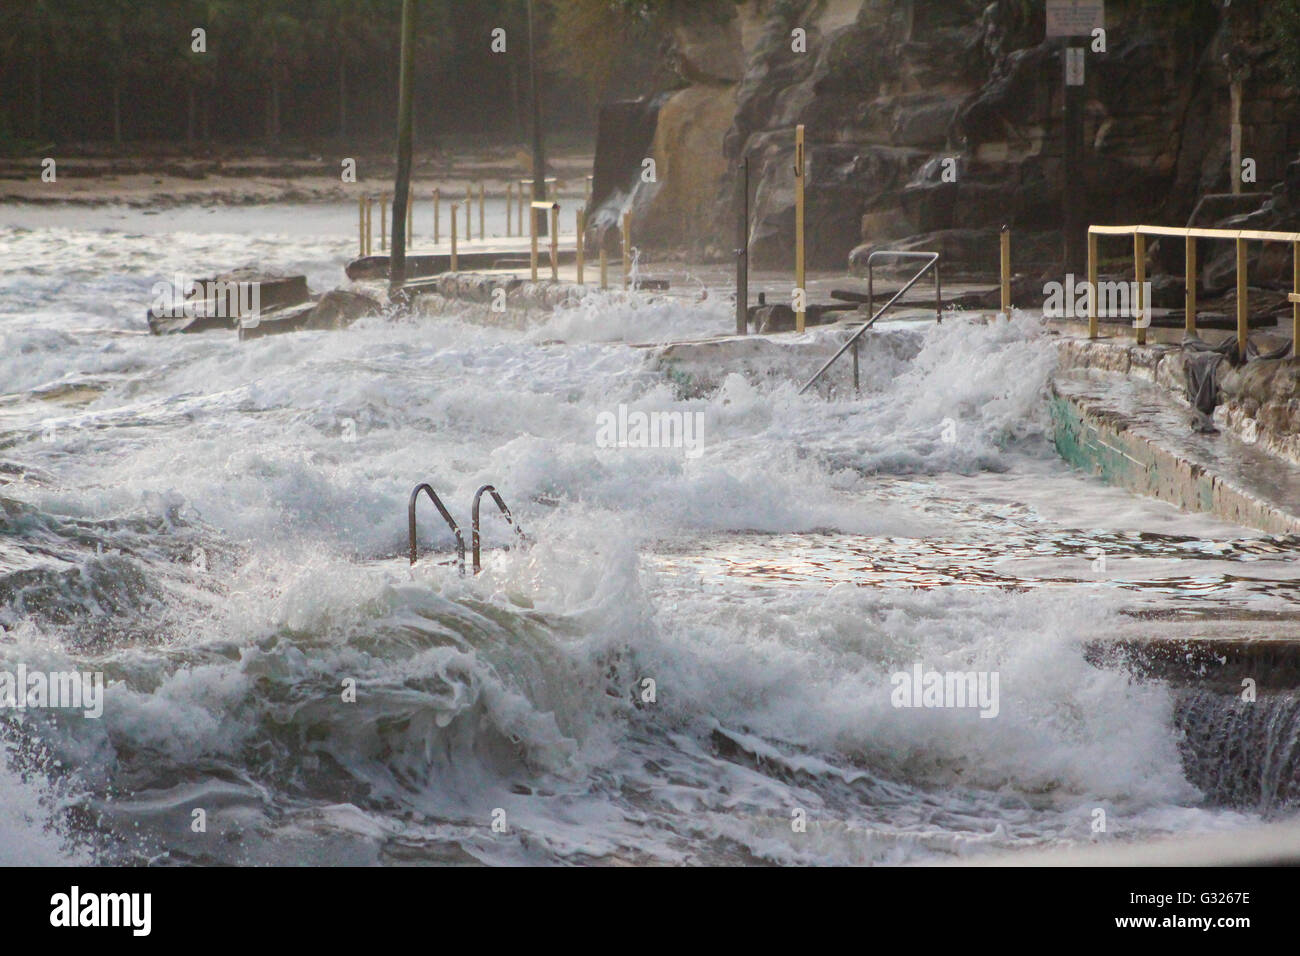 Sydney australia 06th june 2016 waves crash onto marine parade sydney australia 06th june 2016 waves crash onto marine parade the walkway from manly beach to shelly beach which has been severely damaged in the nvjuhfo Gallery